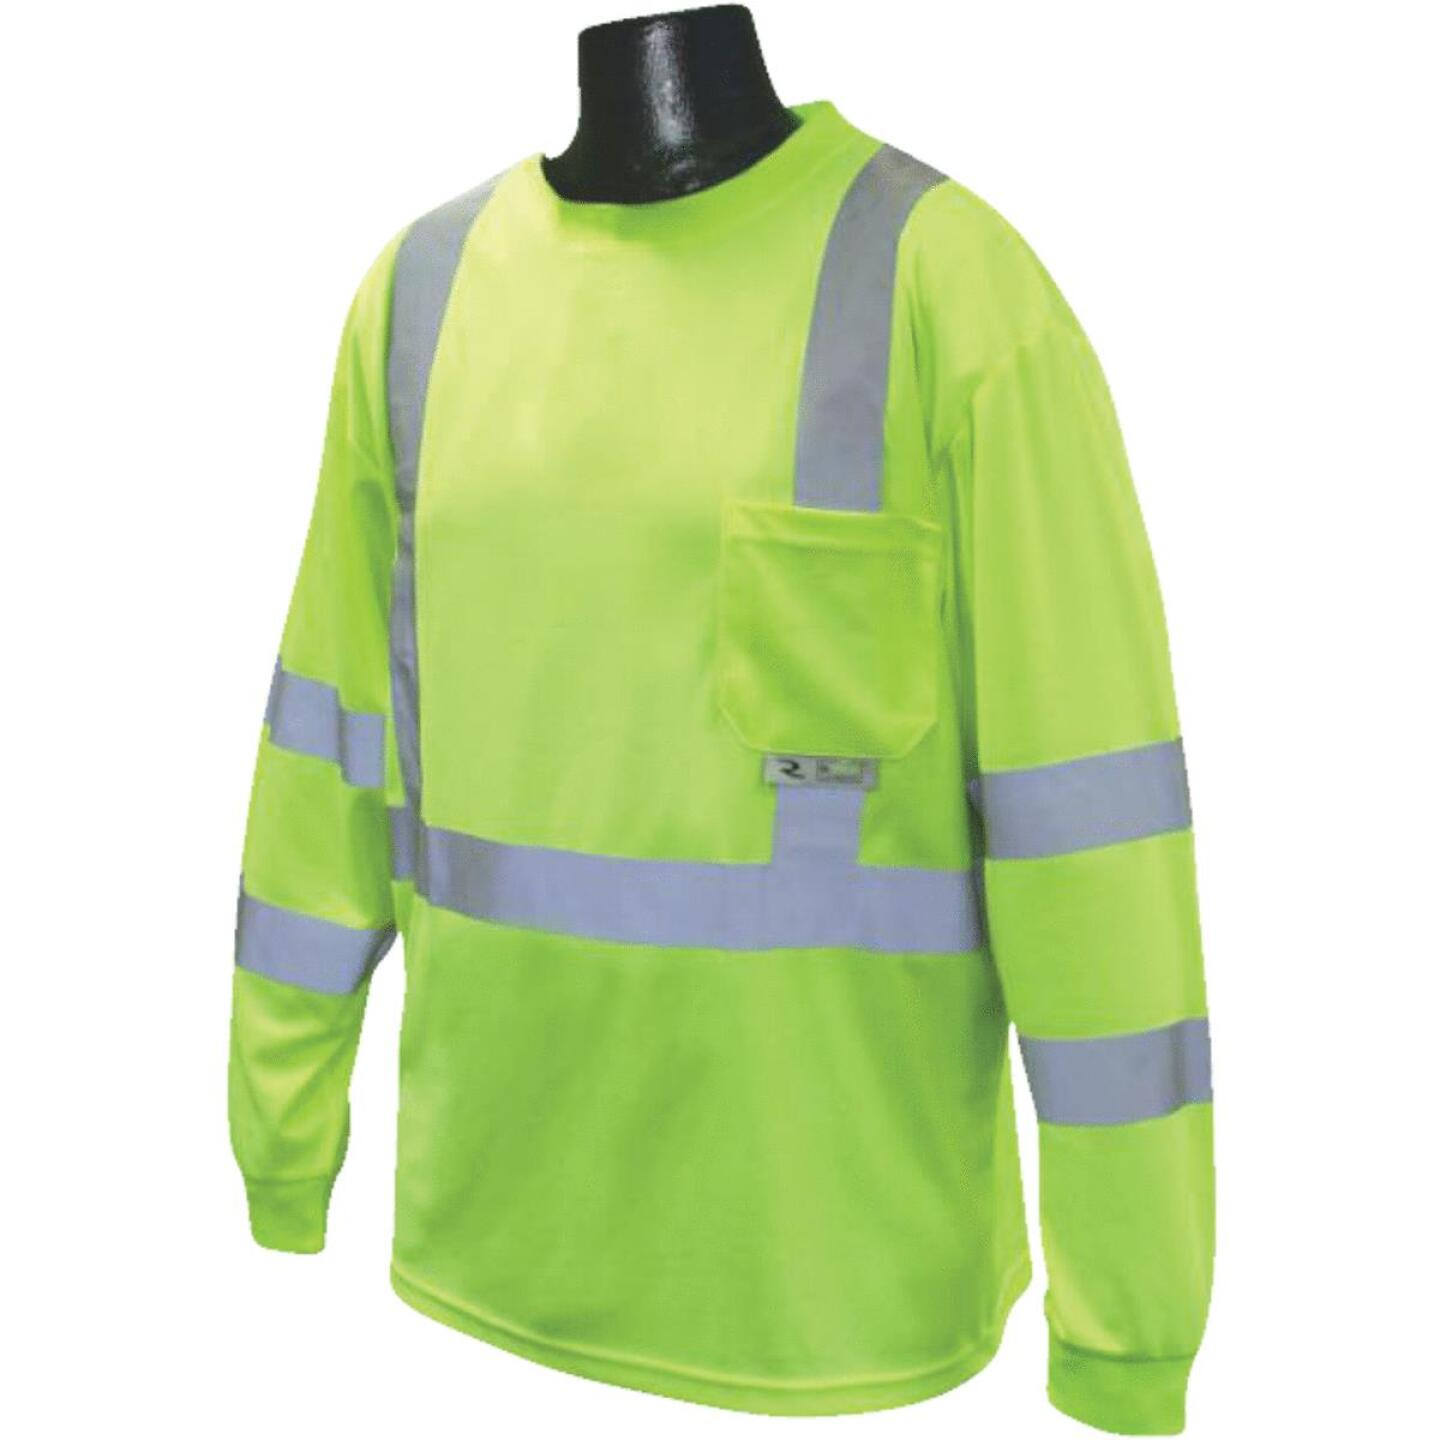 Radians Rad Wear ANSI Class 3 Hi Vis Green Safety T-Shirt 2XL Image 1